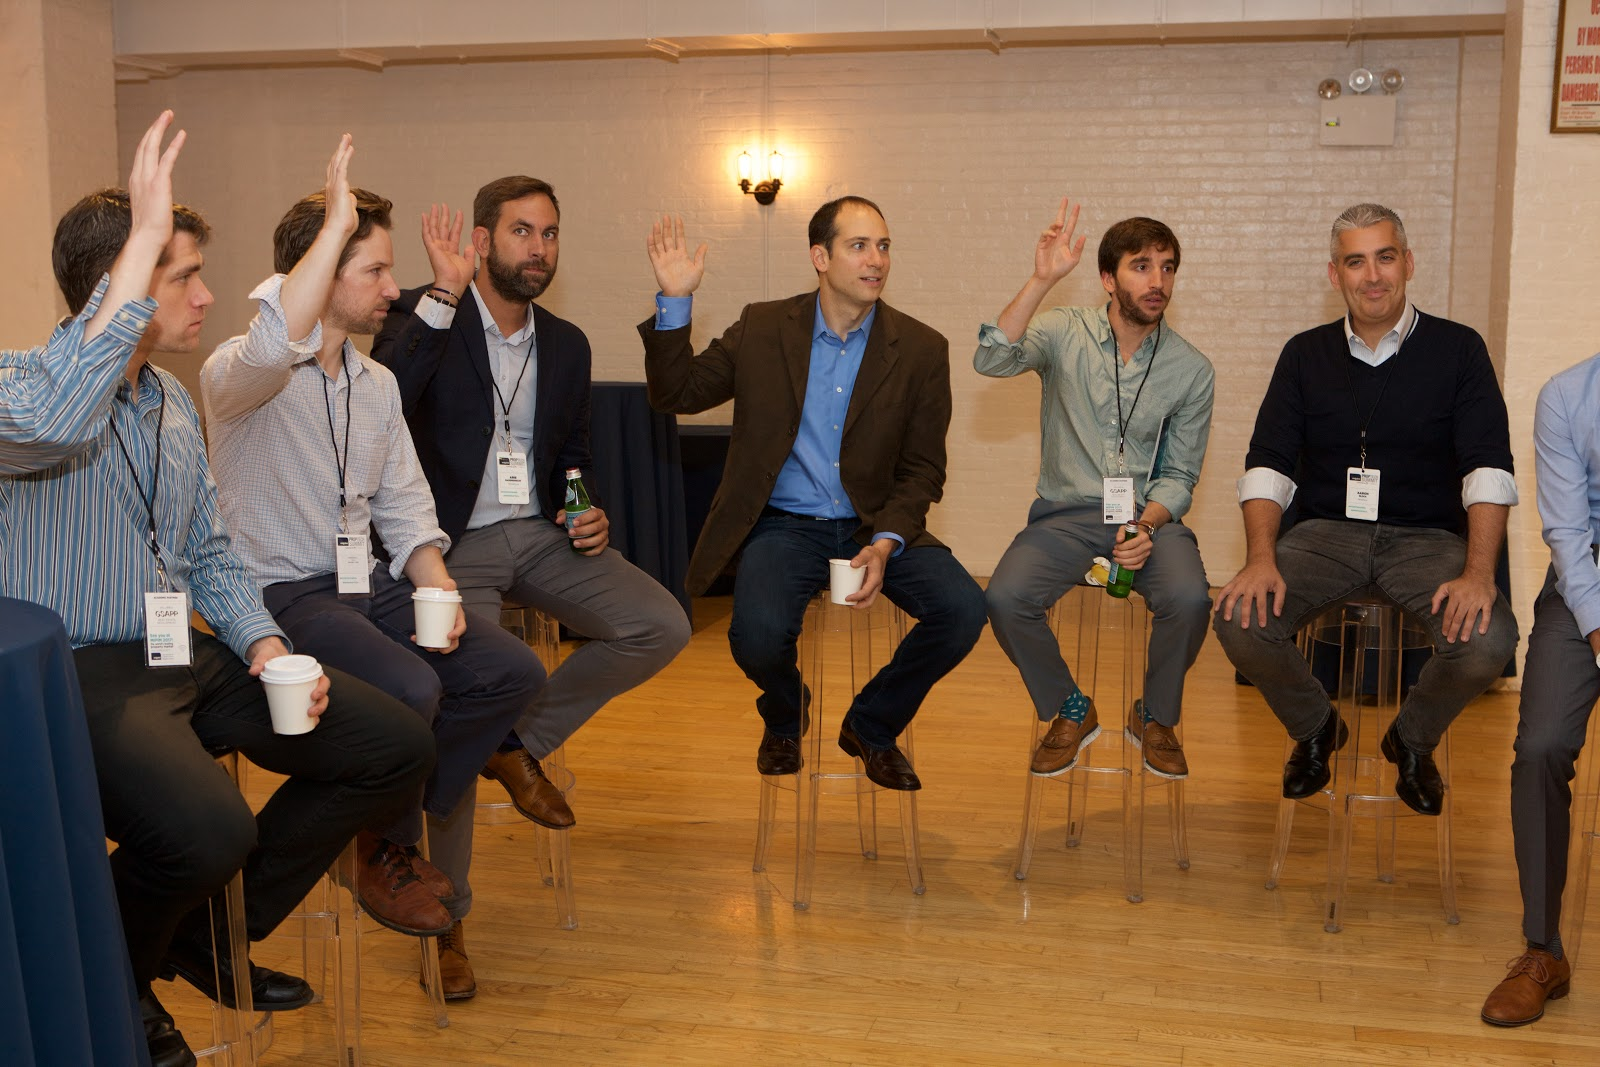 Founders Marshall Cox, Radiator Labs (2nd from left) | Arie Barendrecht, Wired Score | Ross Goldenberg, SiteCompli | Aaron Block, MetaProp NYC (far right) at RETech Leaders Breakfast Roundtable